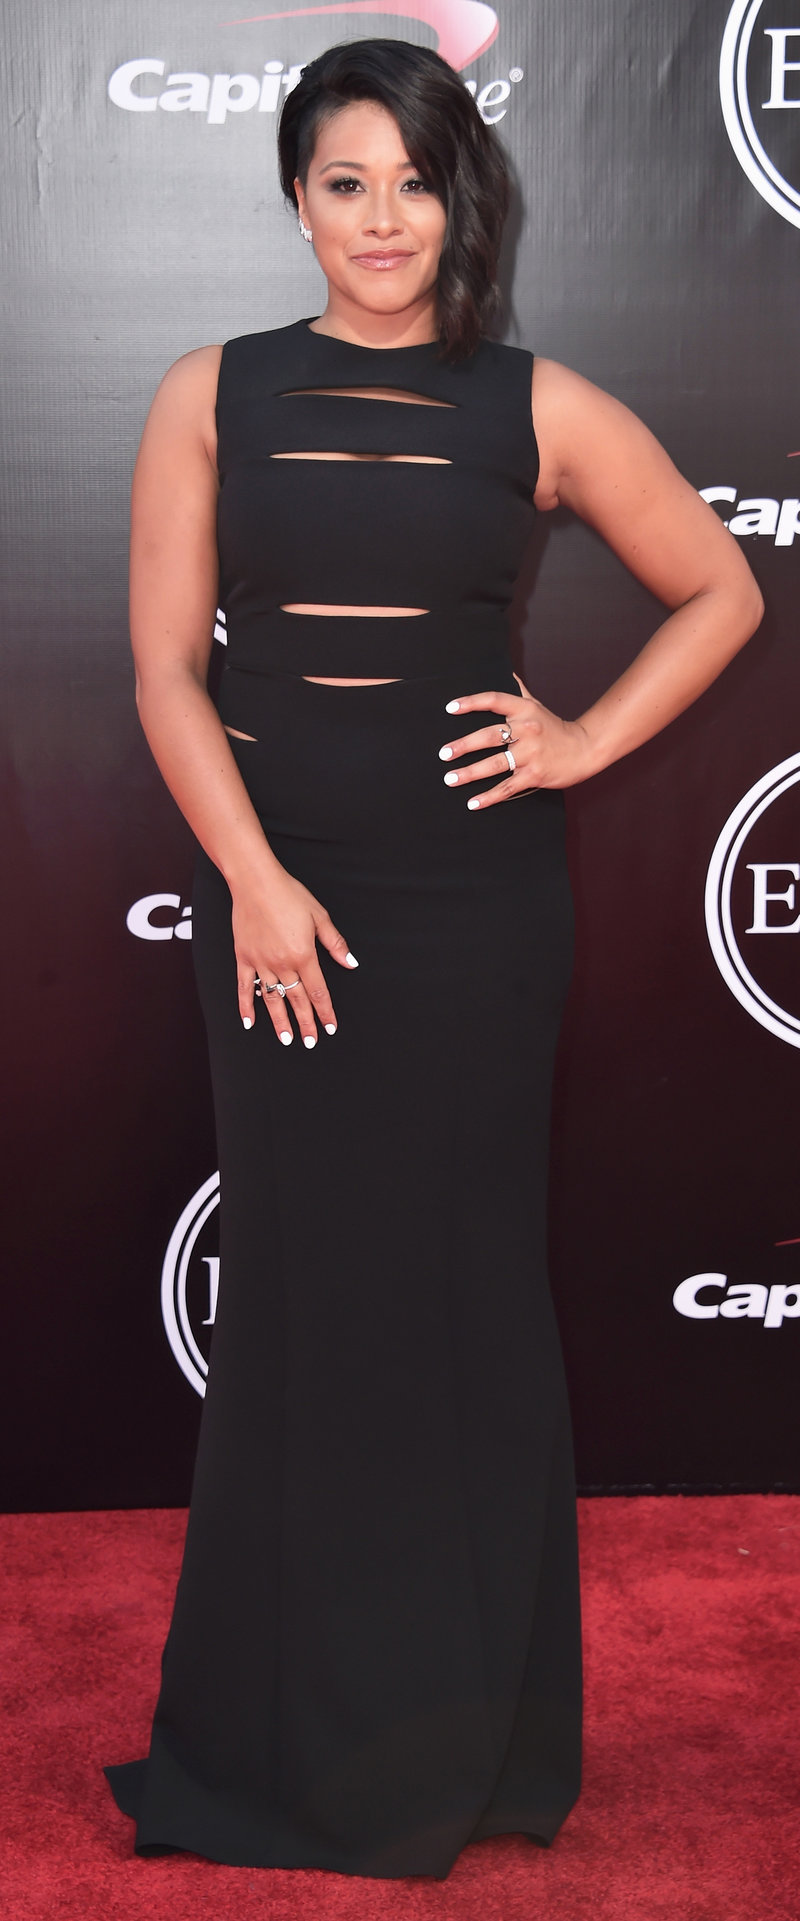 LOS ANGELES, CA - JULY 13: Actress Gina Rodriguez attends the 2016 ESPYS at Microsoft Theater on July 13, 2016 in Los Angeles, California. (Photo by Alberto E. Rodriguez/Getty Images)